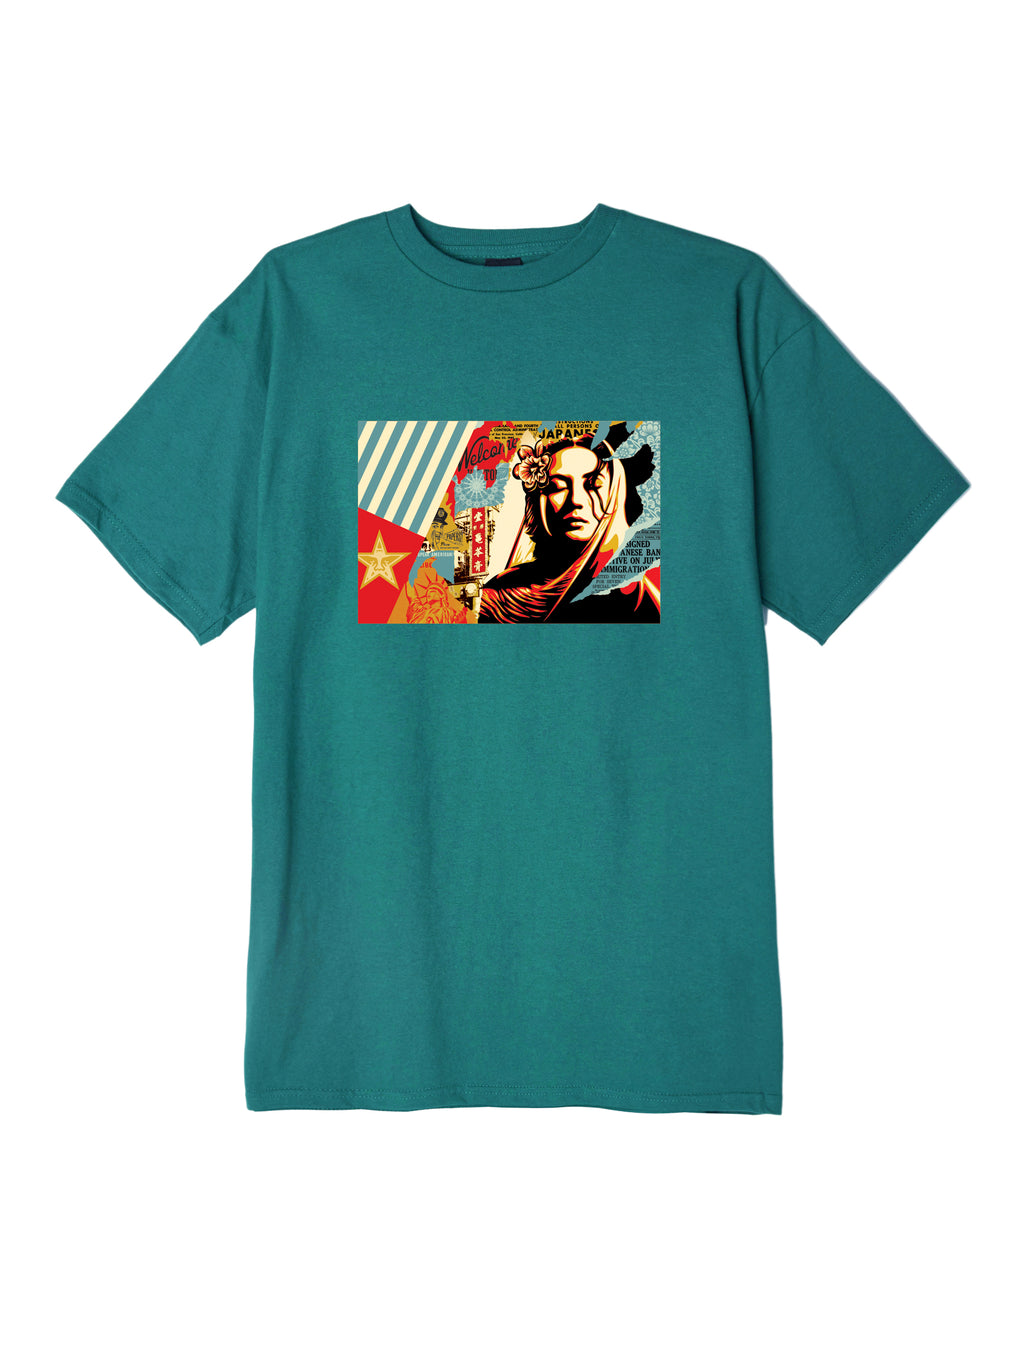 OBEY - Welcome Visitor Men's Tee, Teal